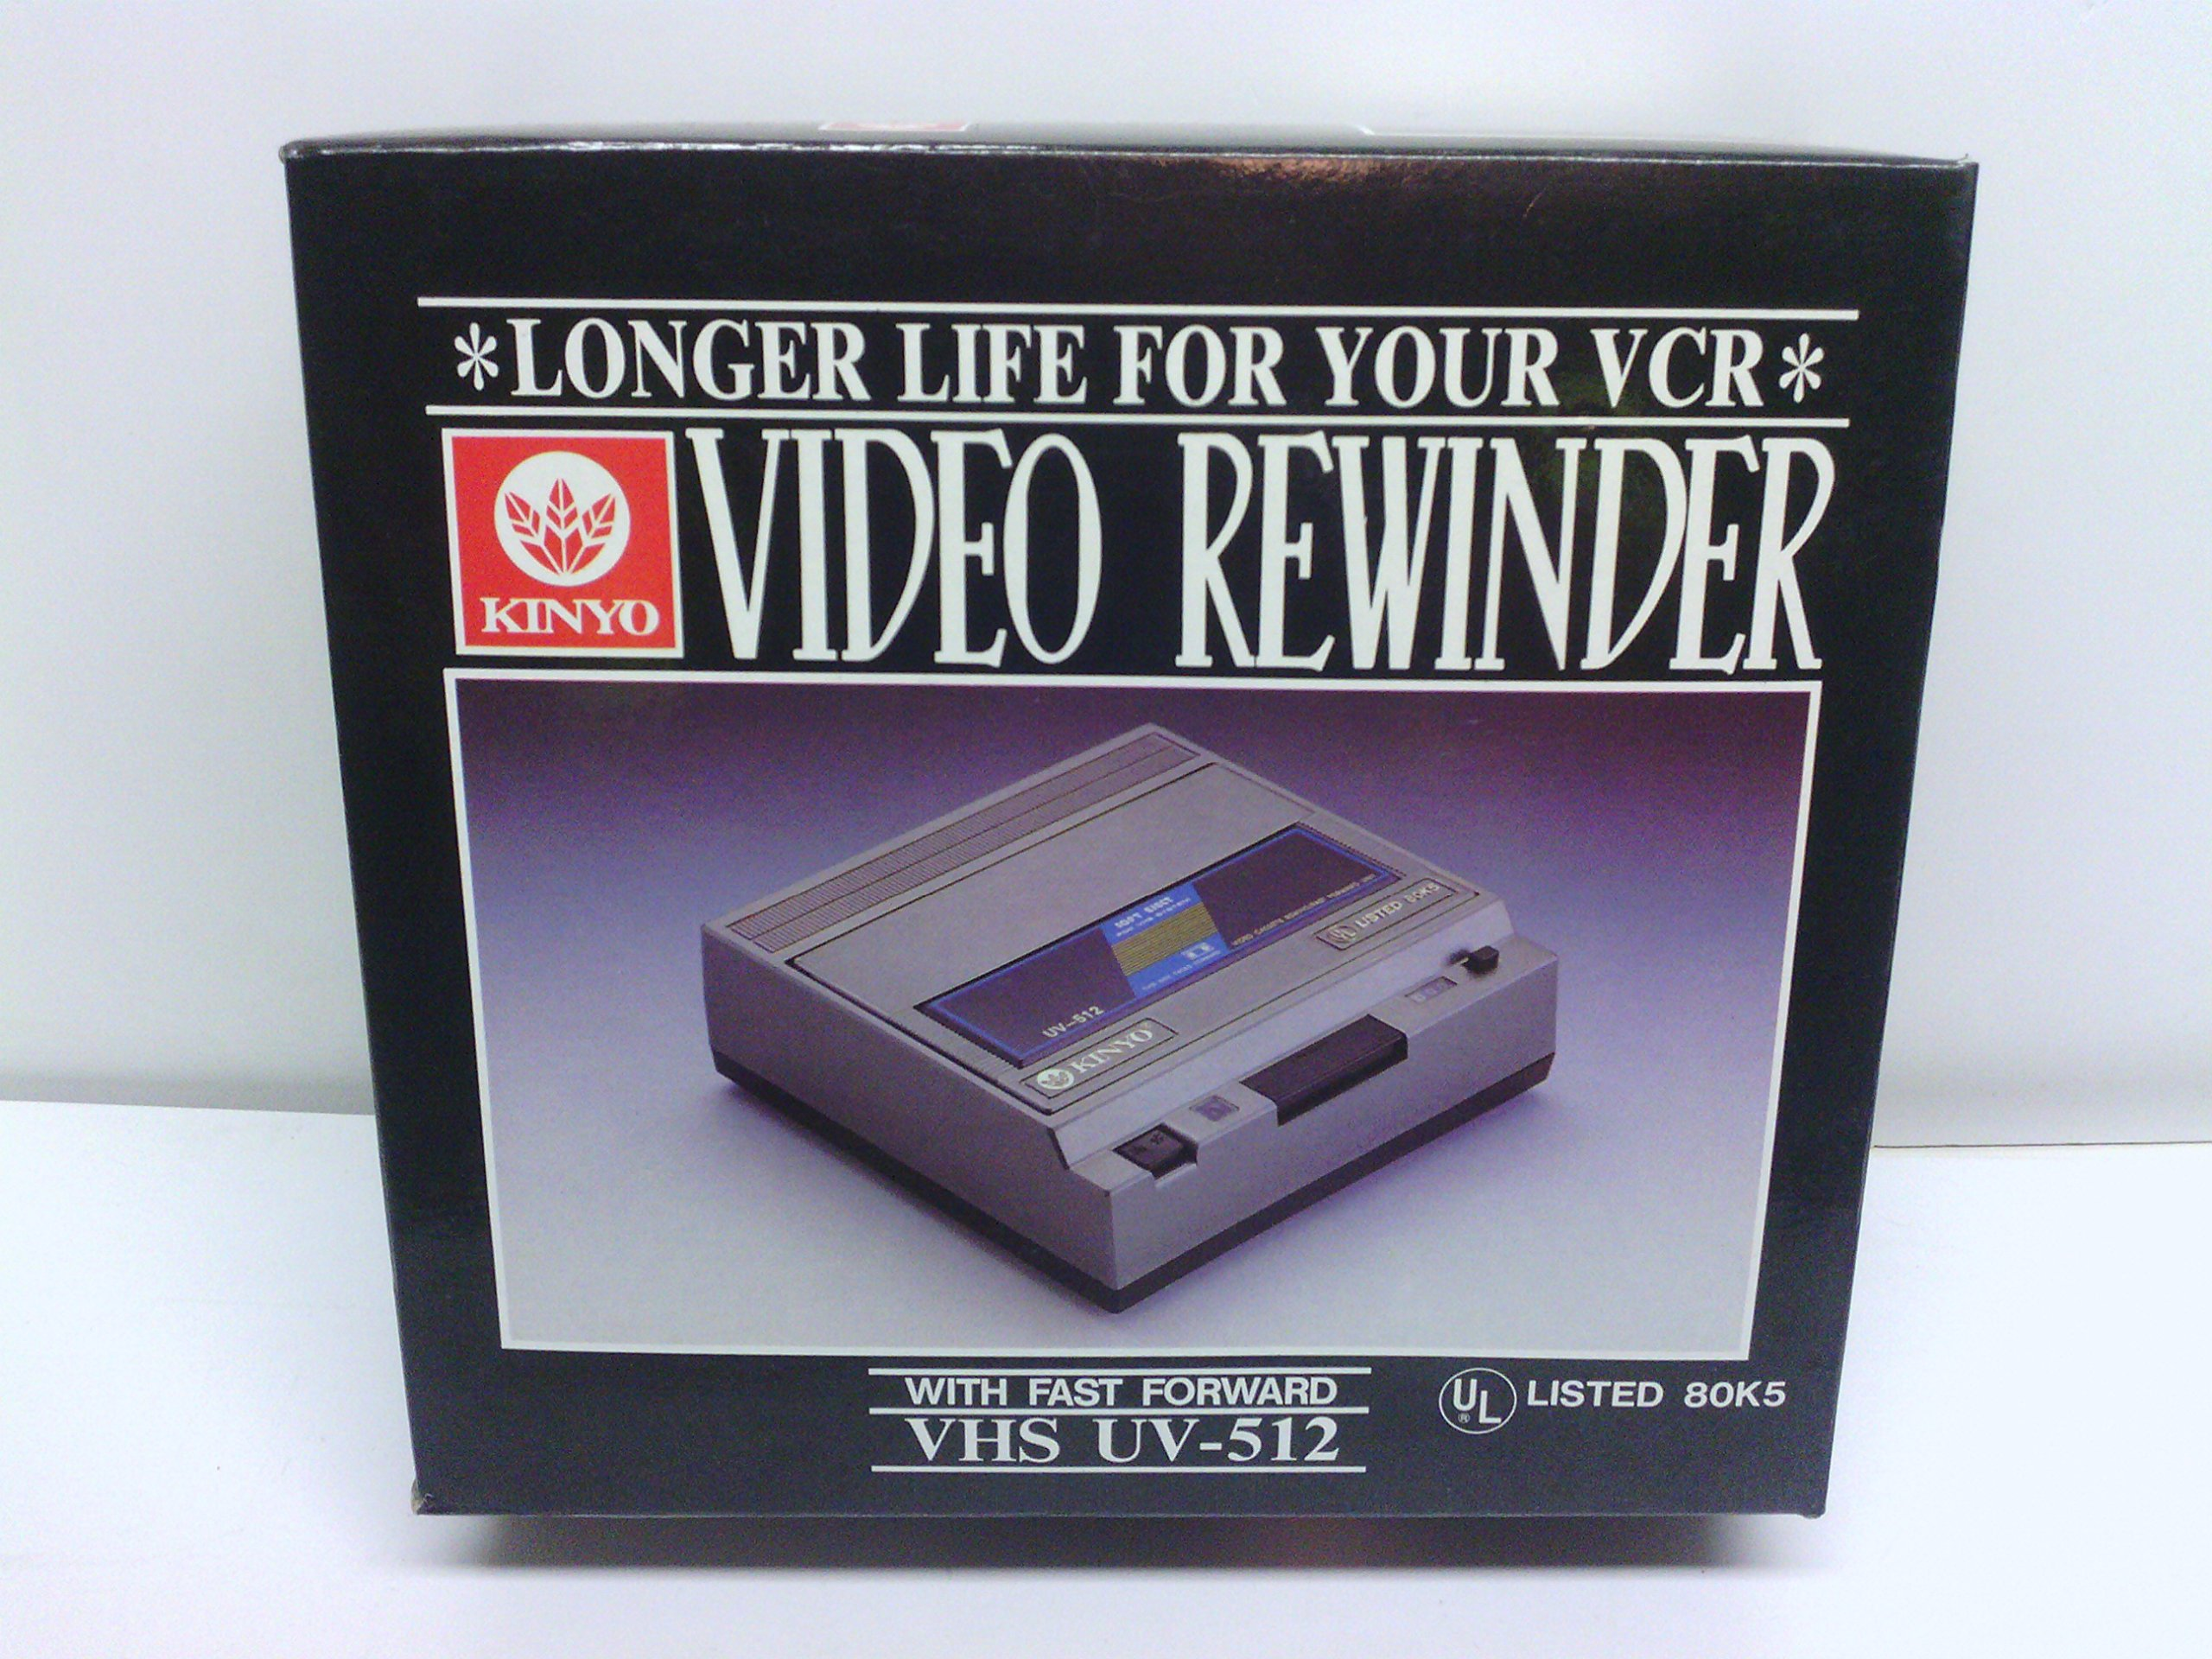 Kinyo Video Rewinder with Fast Forward